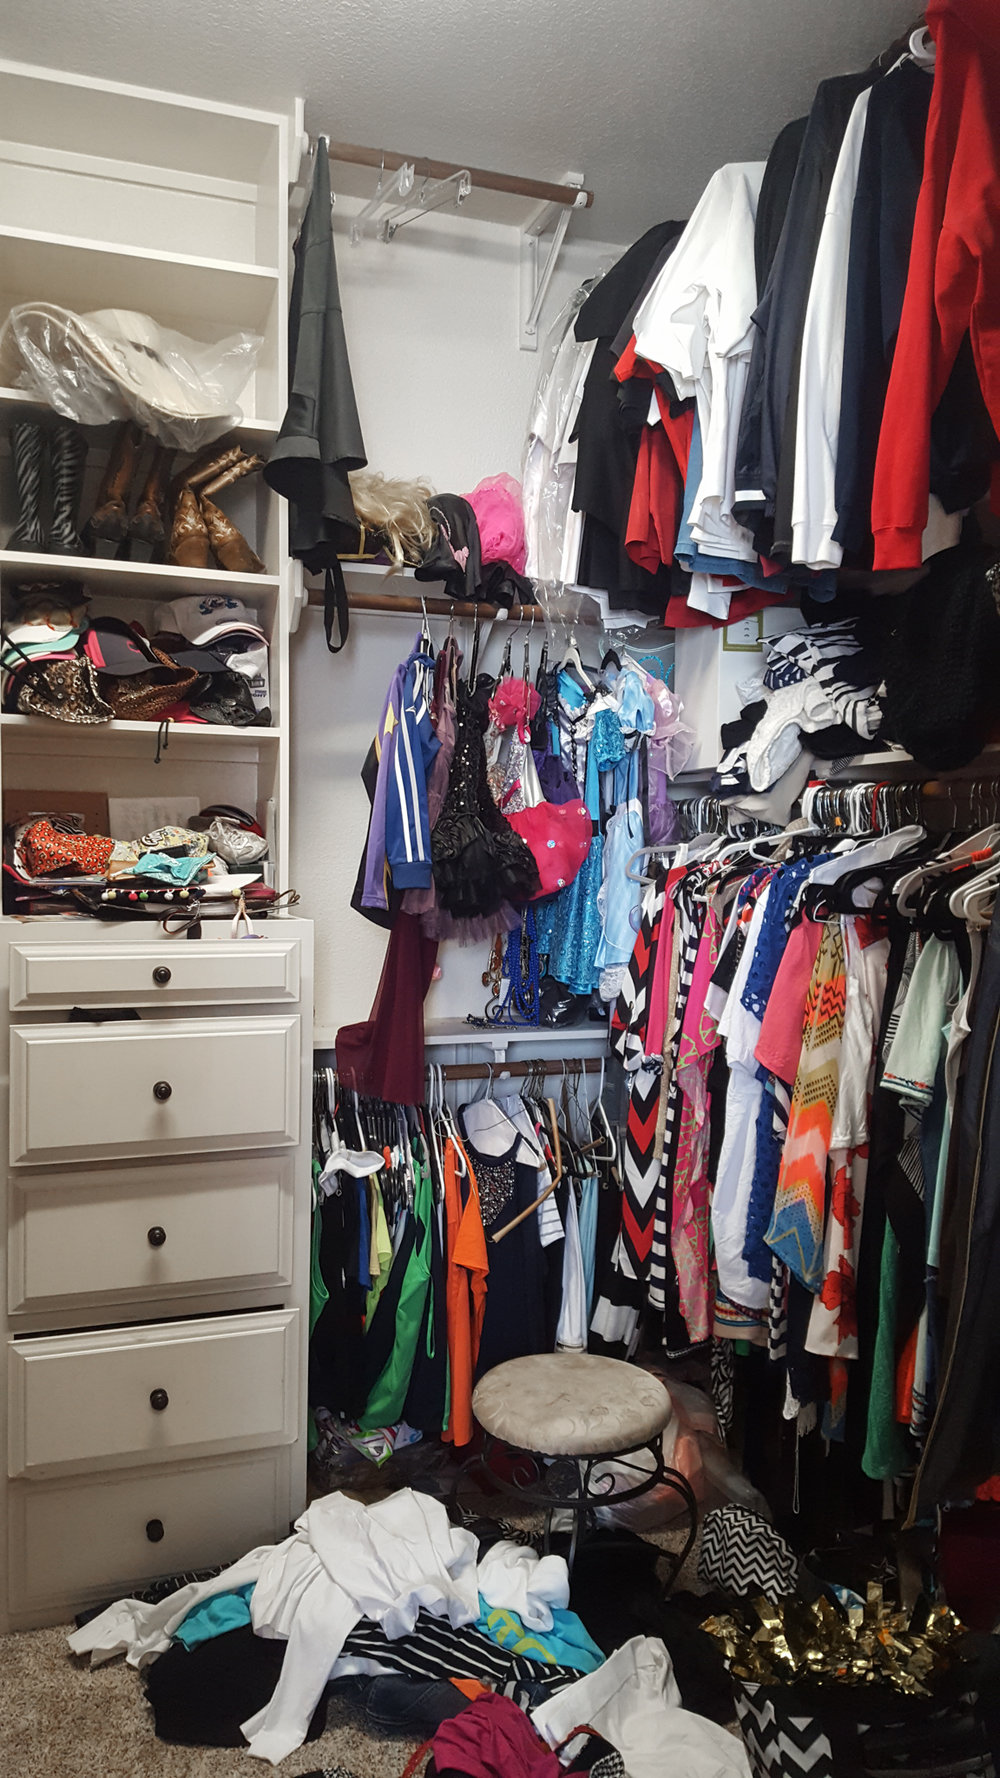 Optimal Life Space Closet-163305.jpg